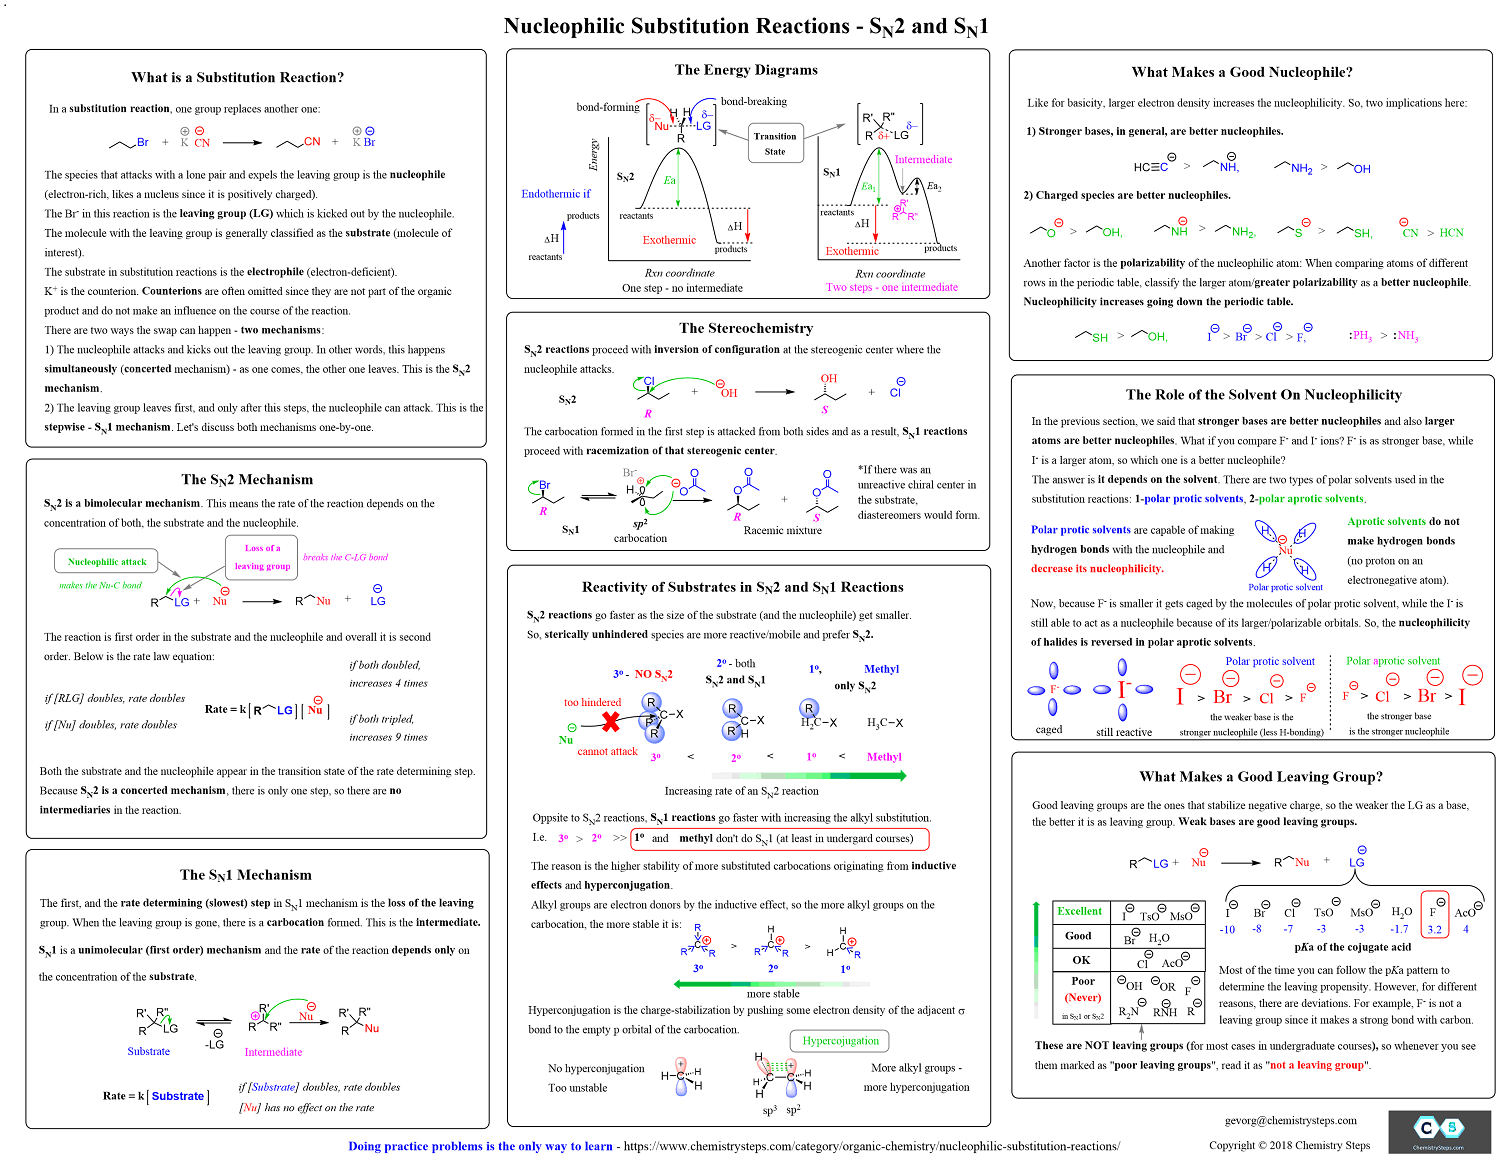 Nucleophilic Substitutions Sn2 And Sn1 Free Cheat Sheet